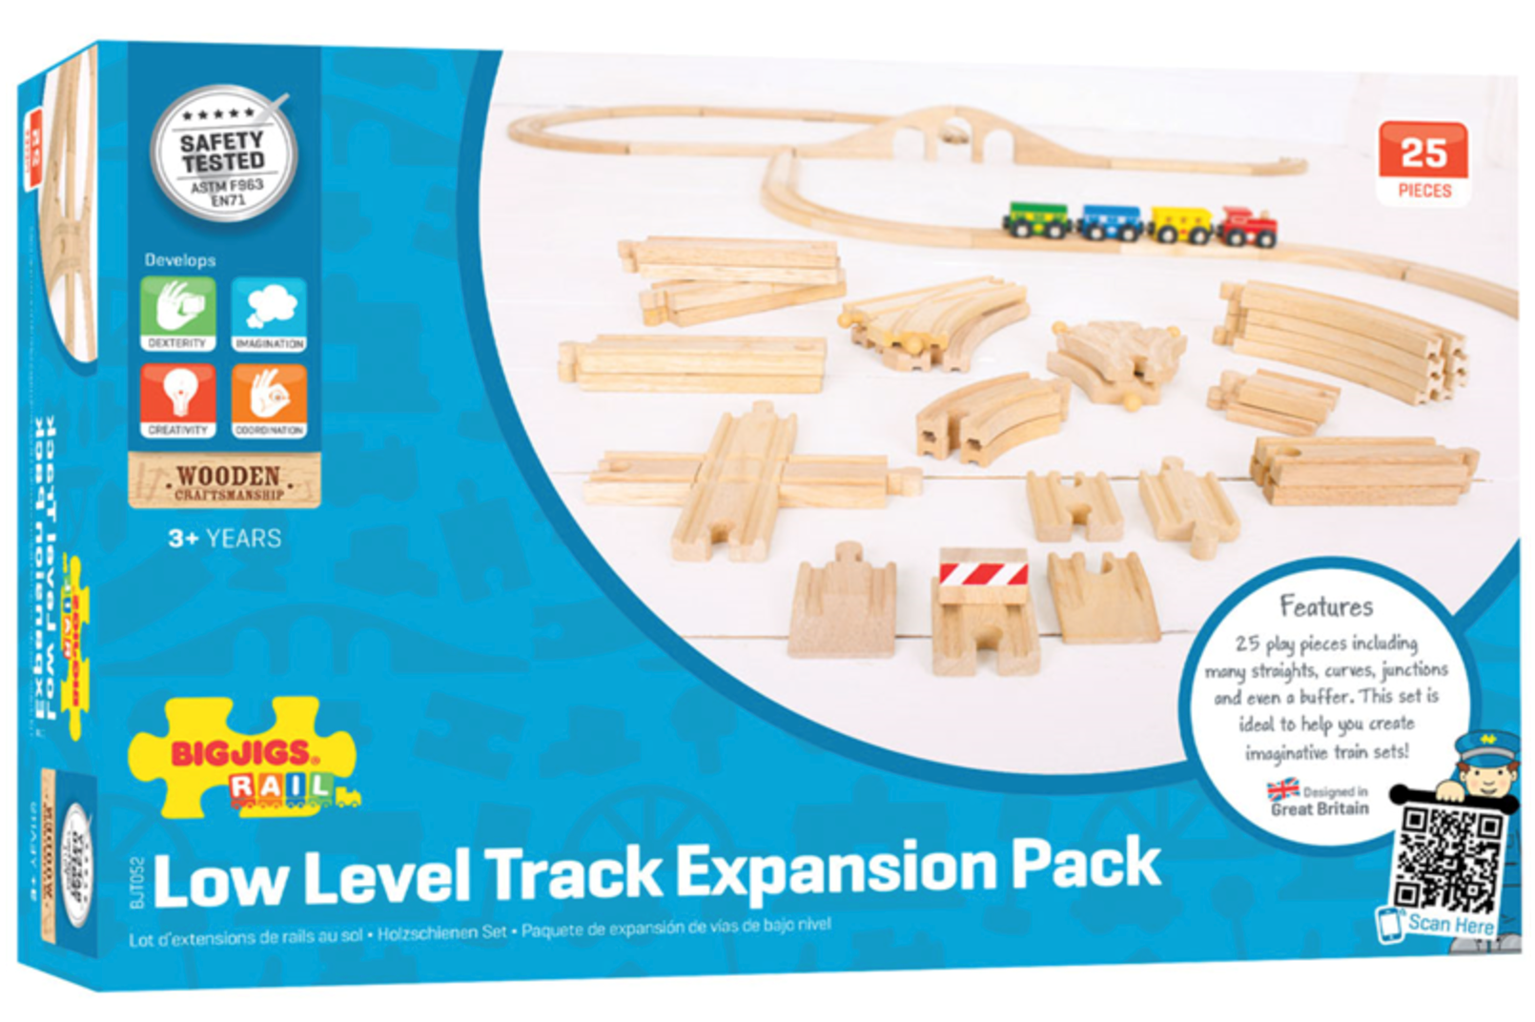 Low Level Track Expansion Pack